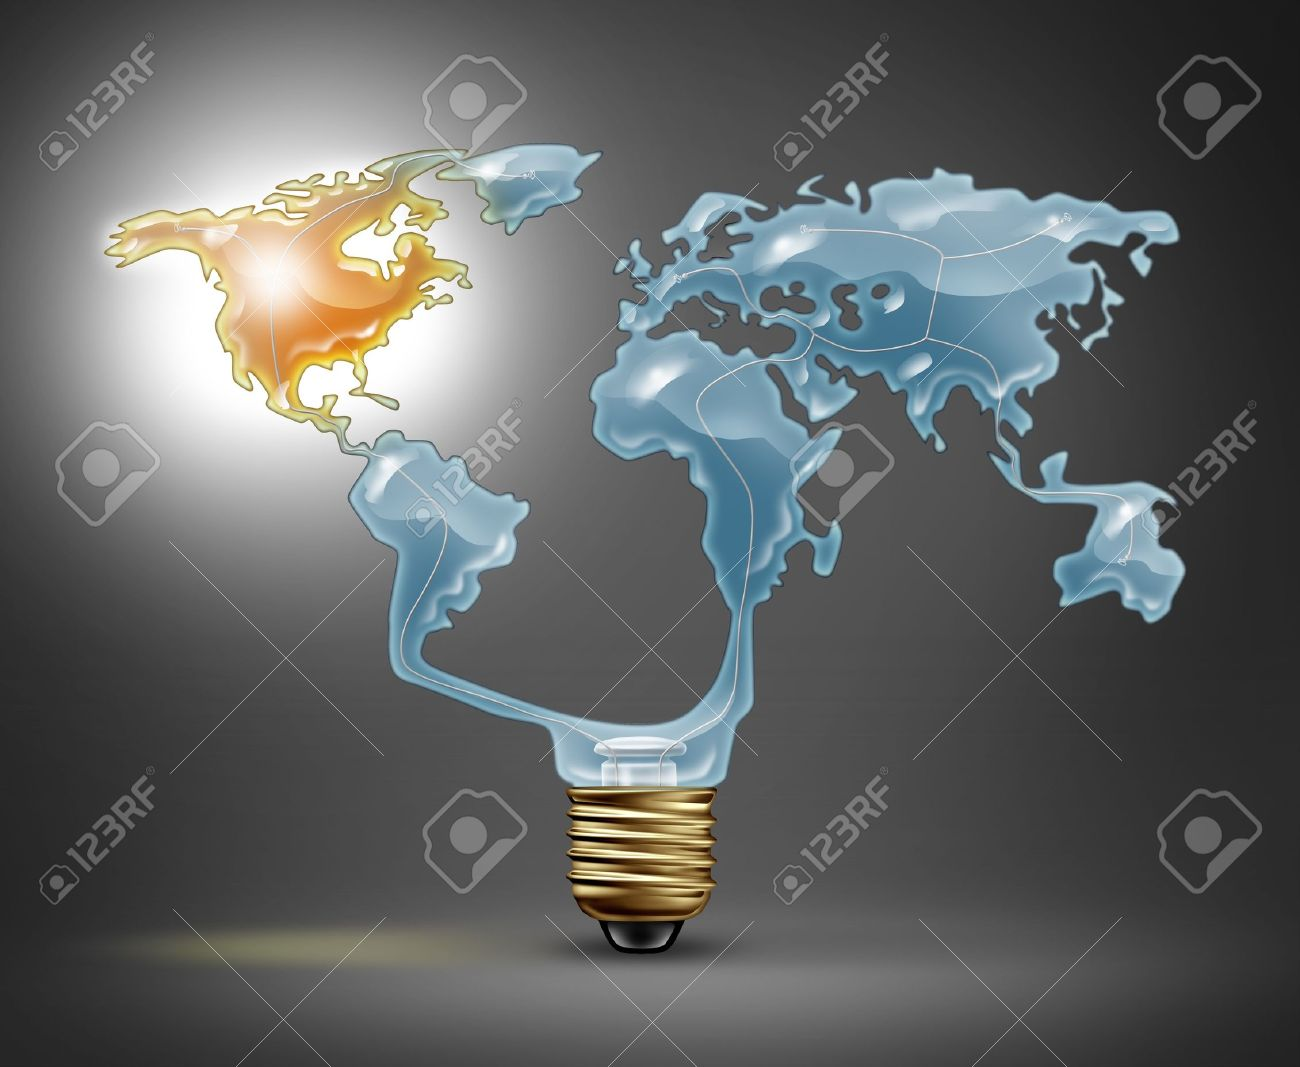 North america recovery with a light bulb in the shape of the stock north america recovery with a light bulb in the shape of the world map representing the gumiabroncs Image collections